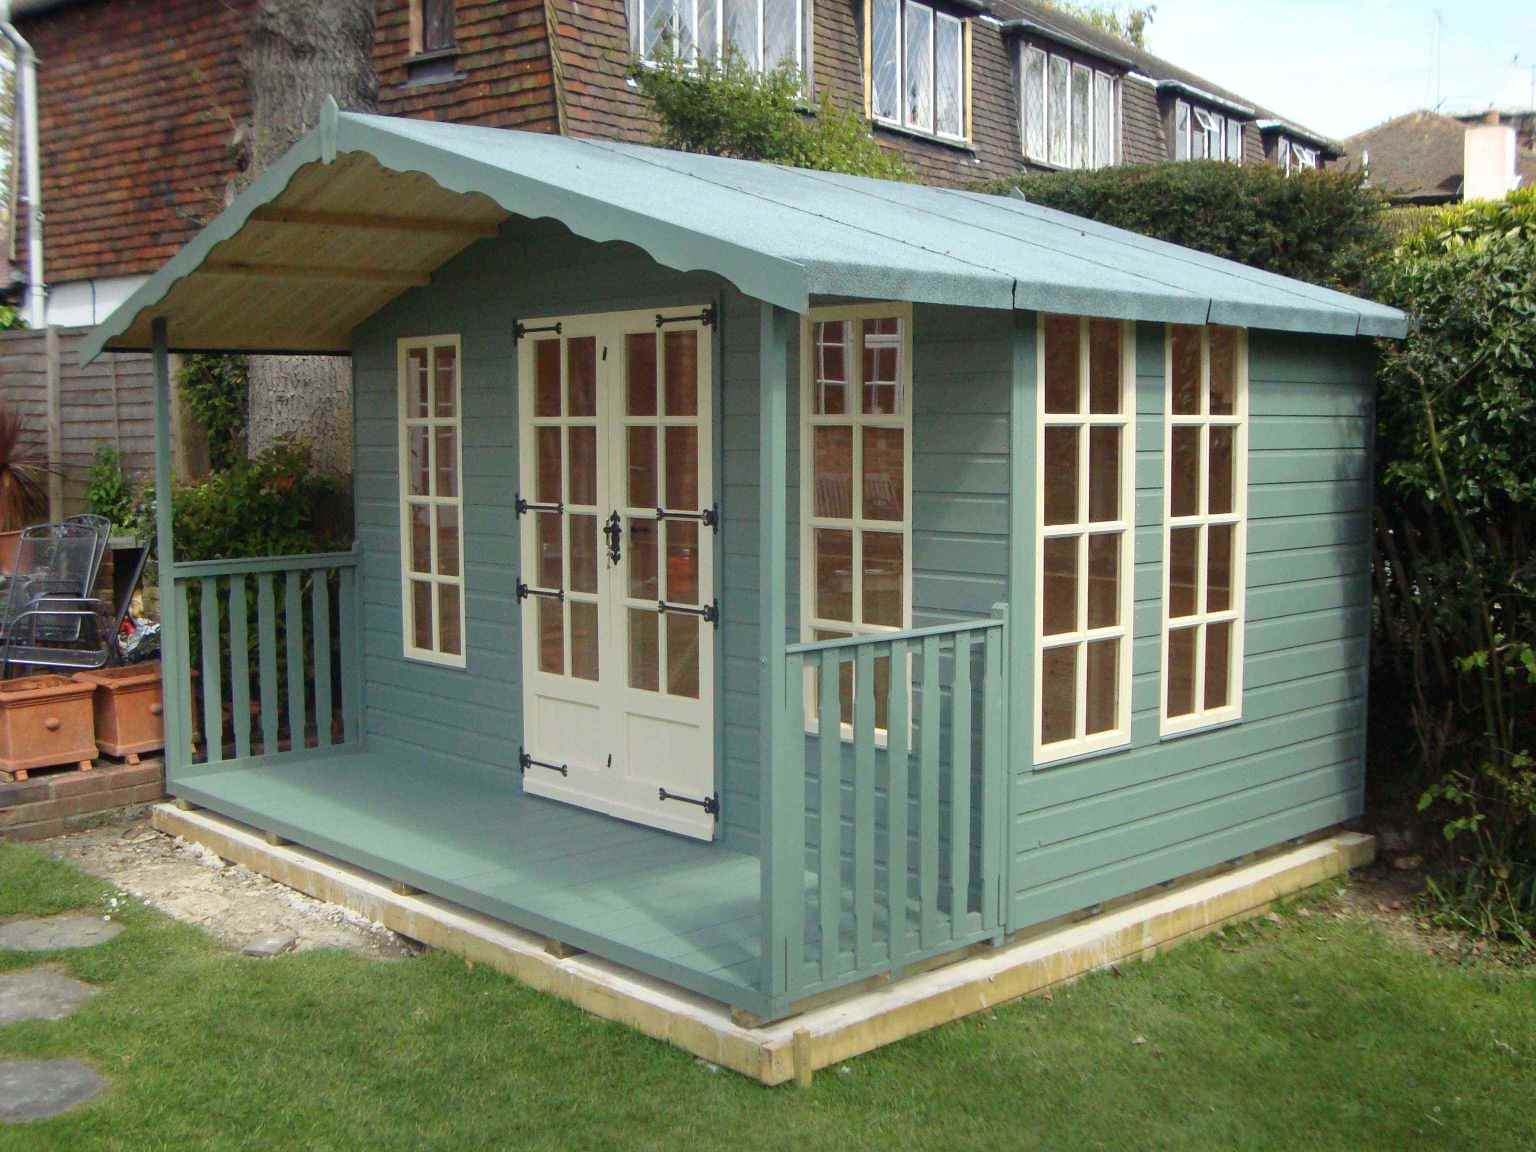 Summer houses garden rooms home offices bespoke mb for Garden designs with summer houses